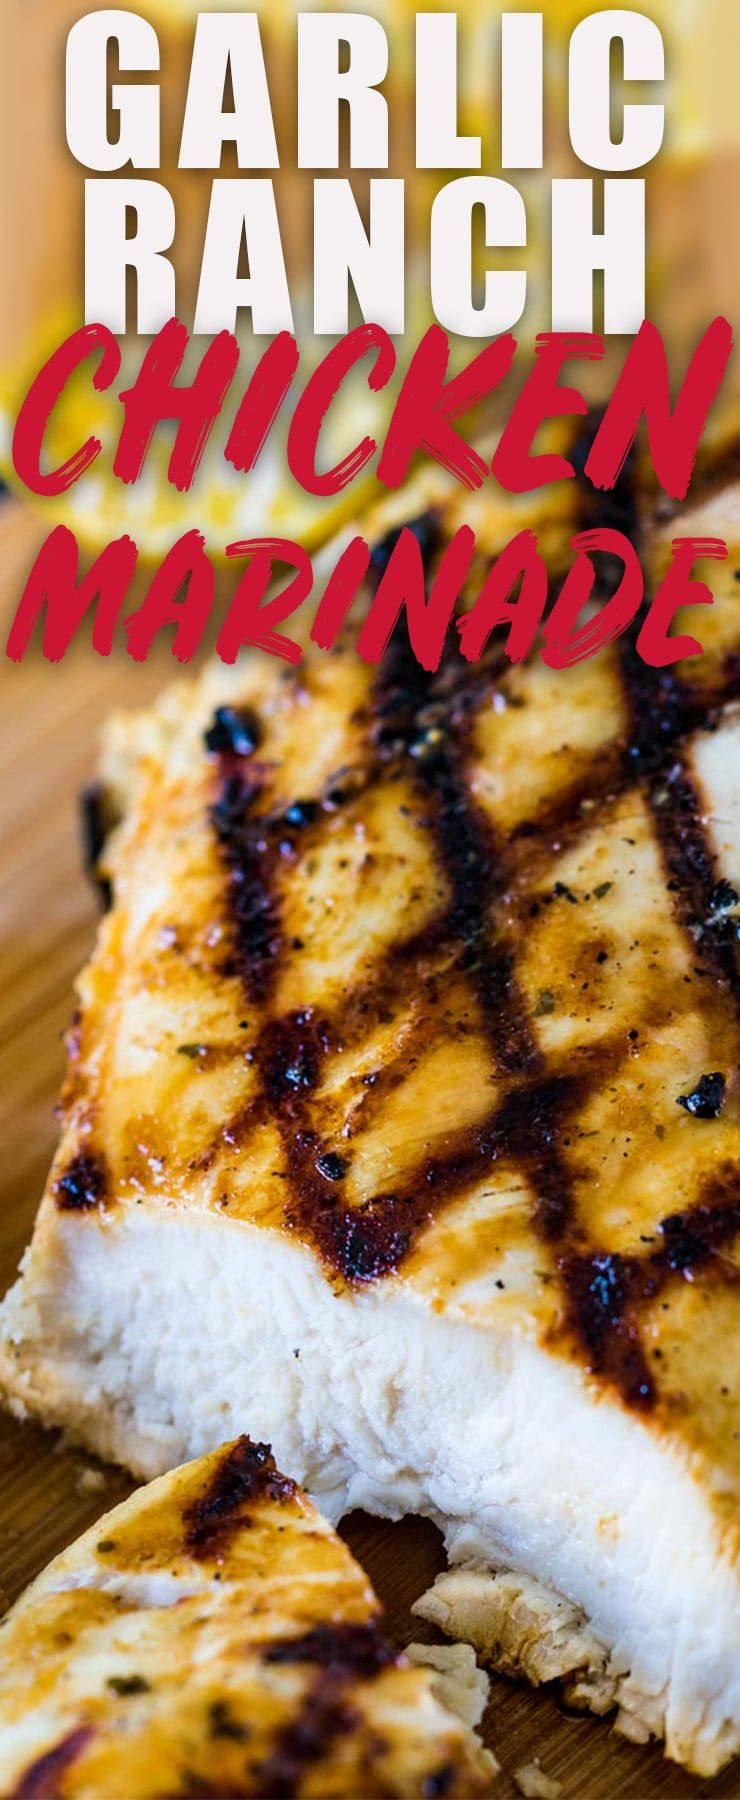 Garlic Ranch Chicken Marinade is a quick and easy marinade that is full of flavor and makes grillin